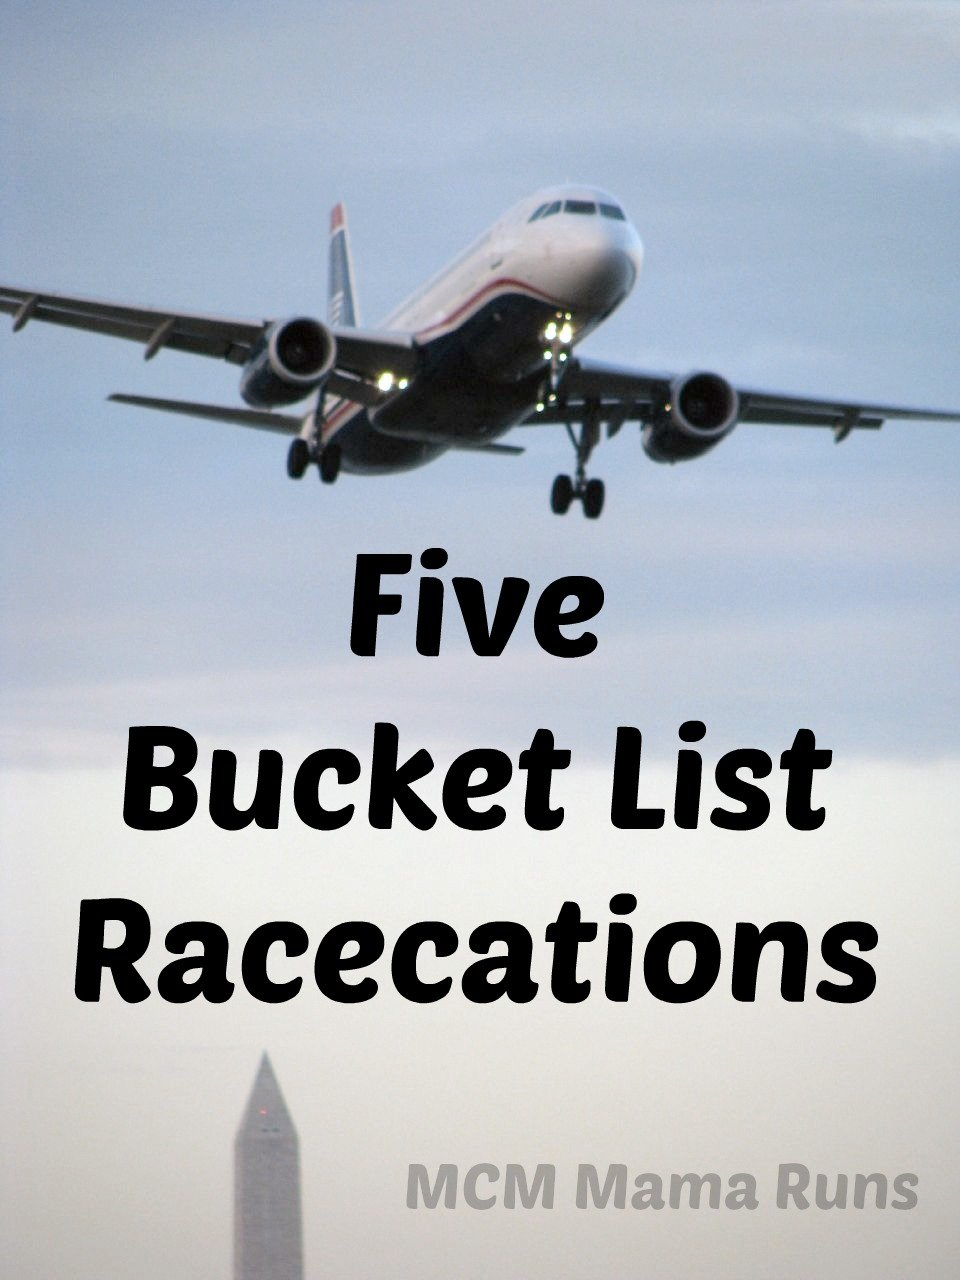 Bucket List Race Locations